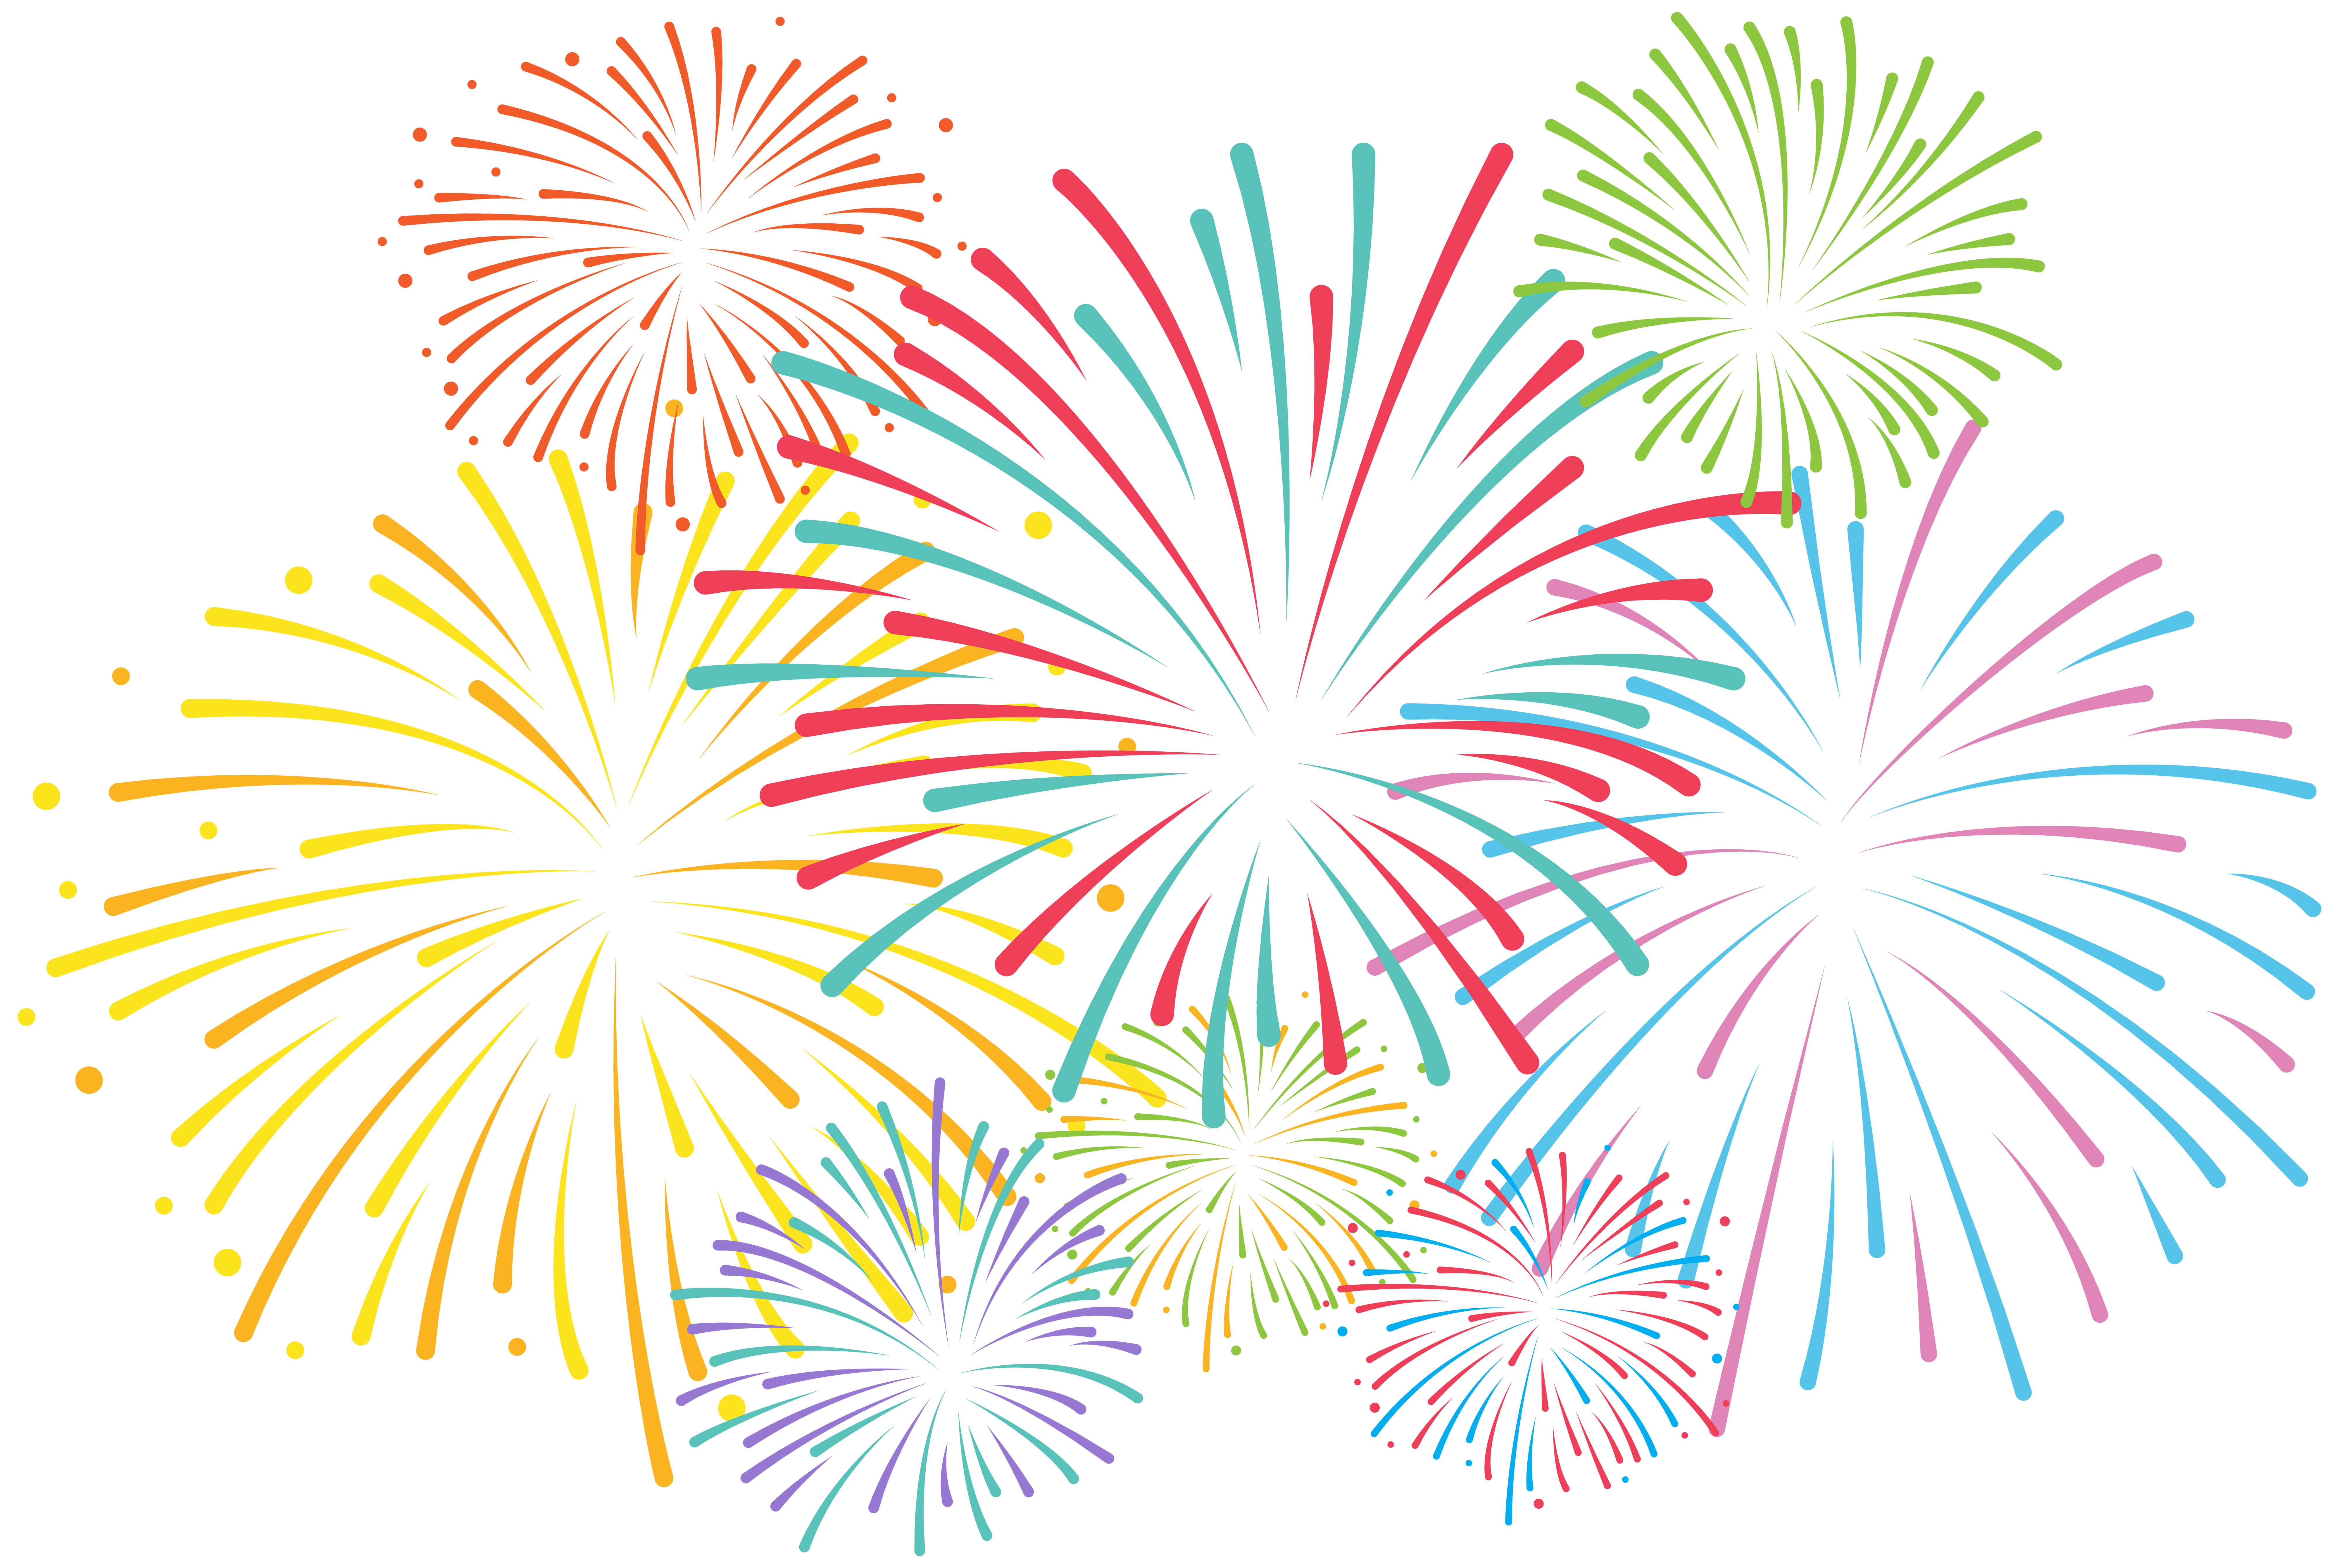 Download Fireworks Free Clipart HD HQ PNG Image in different.